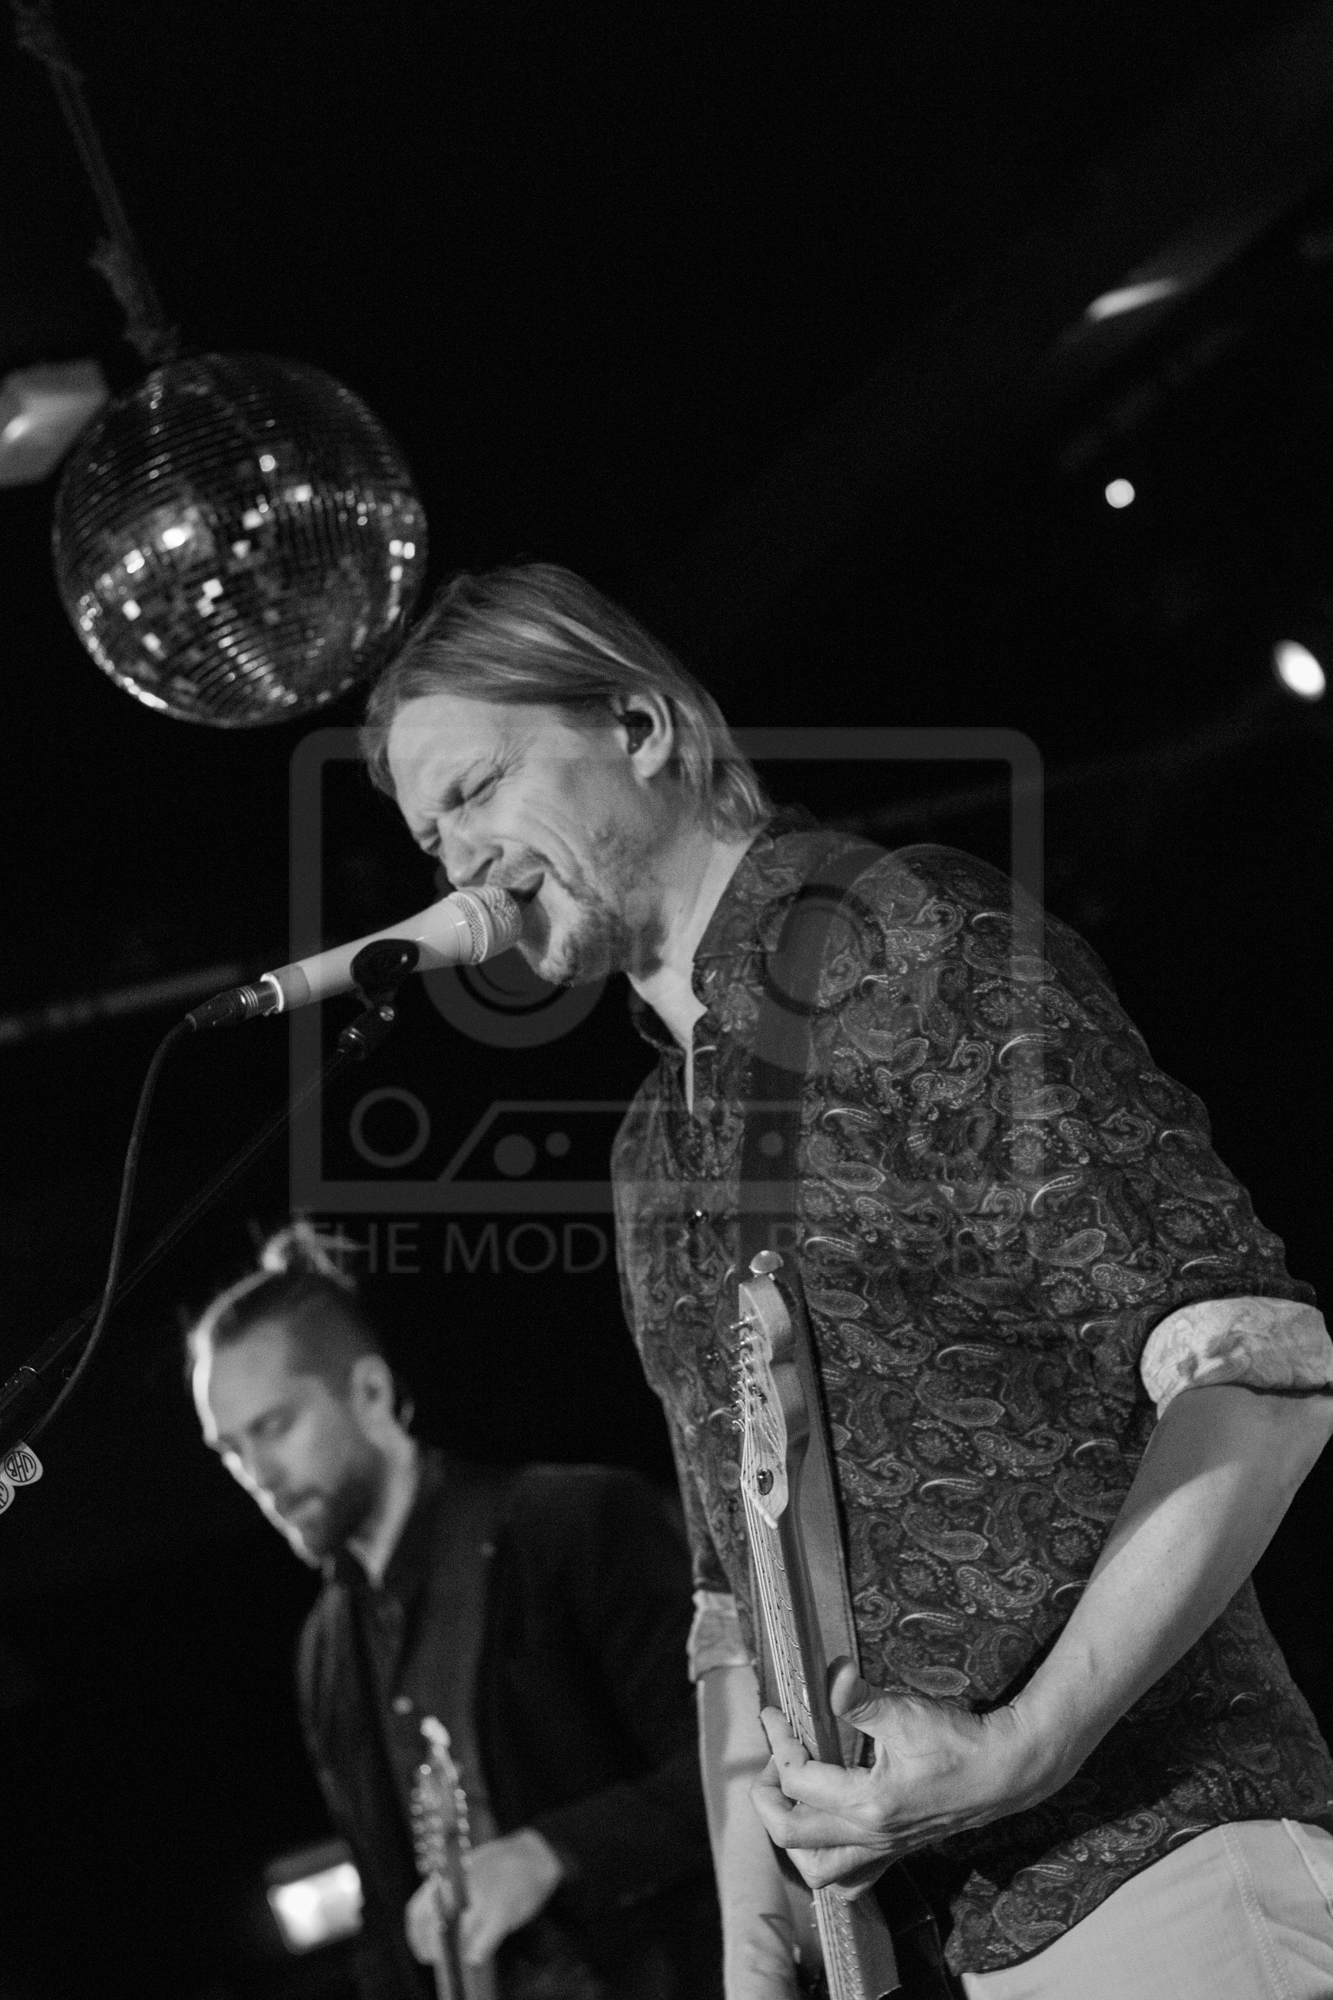 14 - von hertzen brothers - Newcastle University SU, Newcastle - 08-12-18 Picture by Will Gorman Photo.JPG